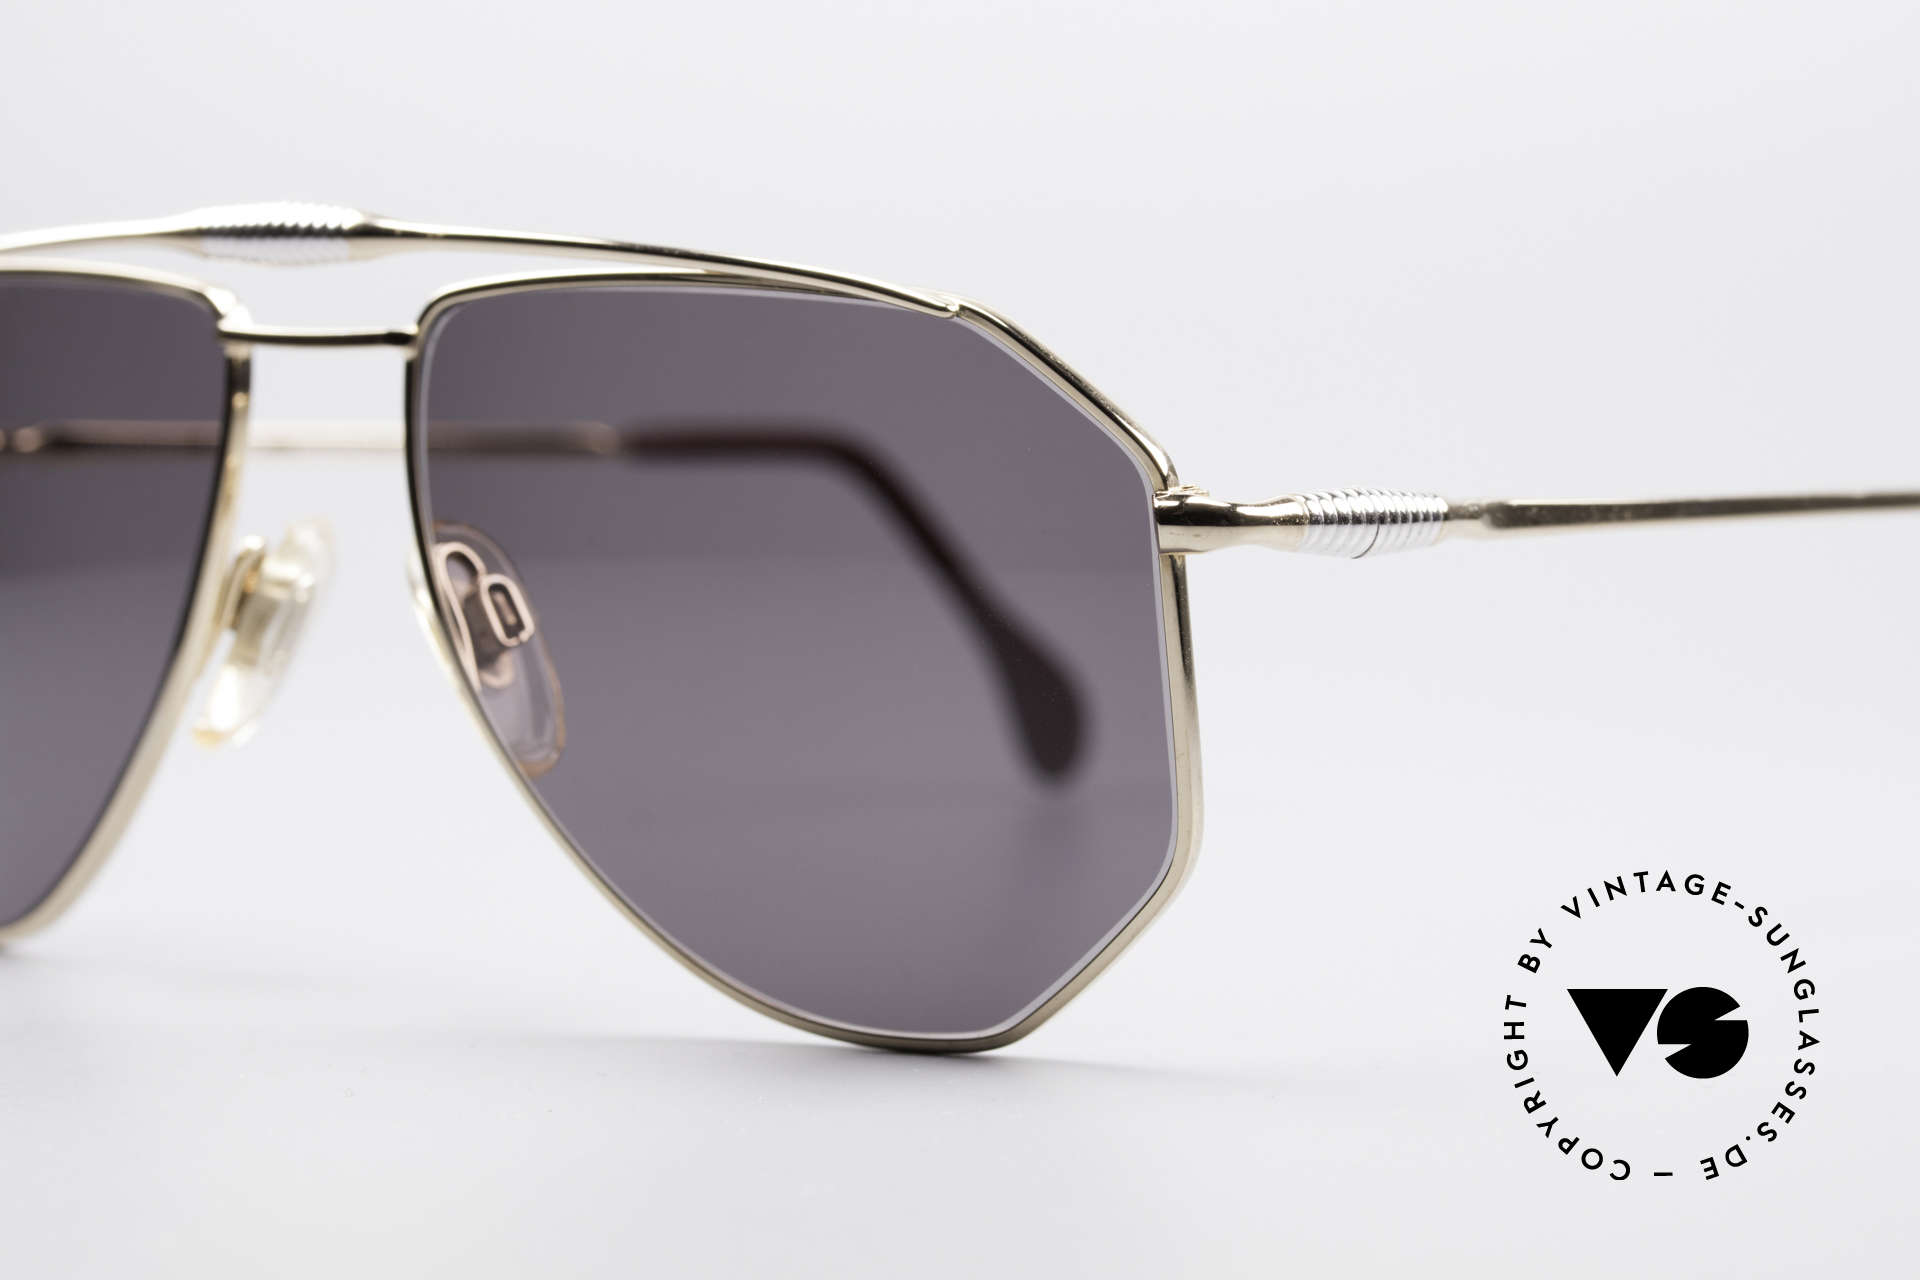 Zollitsch Cadre 120 Medium 80's Aviator Shades, unworn (like all our rare vintage ZOLLITSCH sunglasses), Made for Men